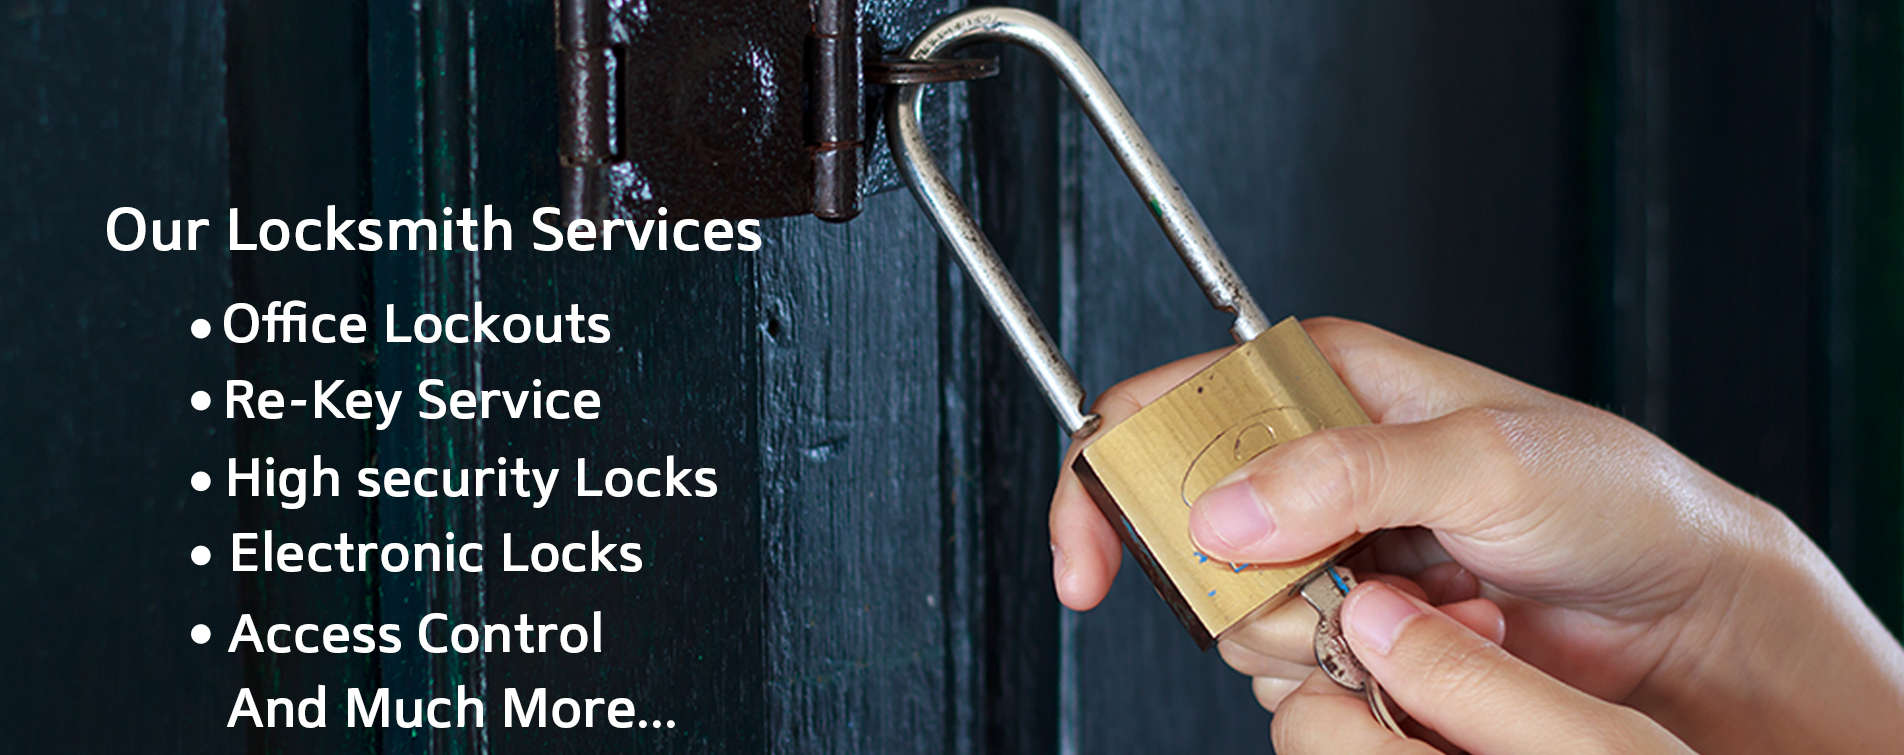 Montclaire South NC Locksmith Store, Charlotte, NC 704-912-1250